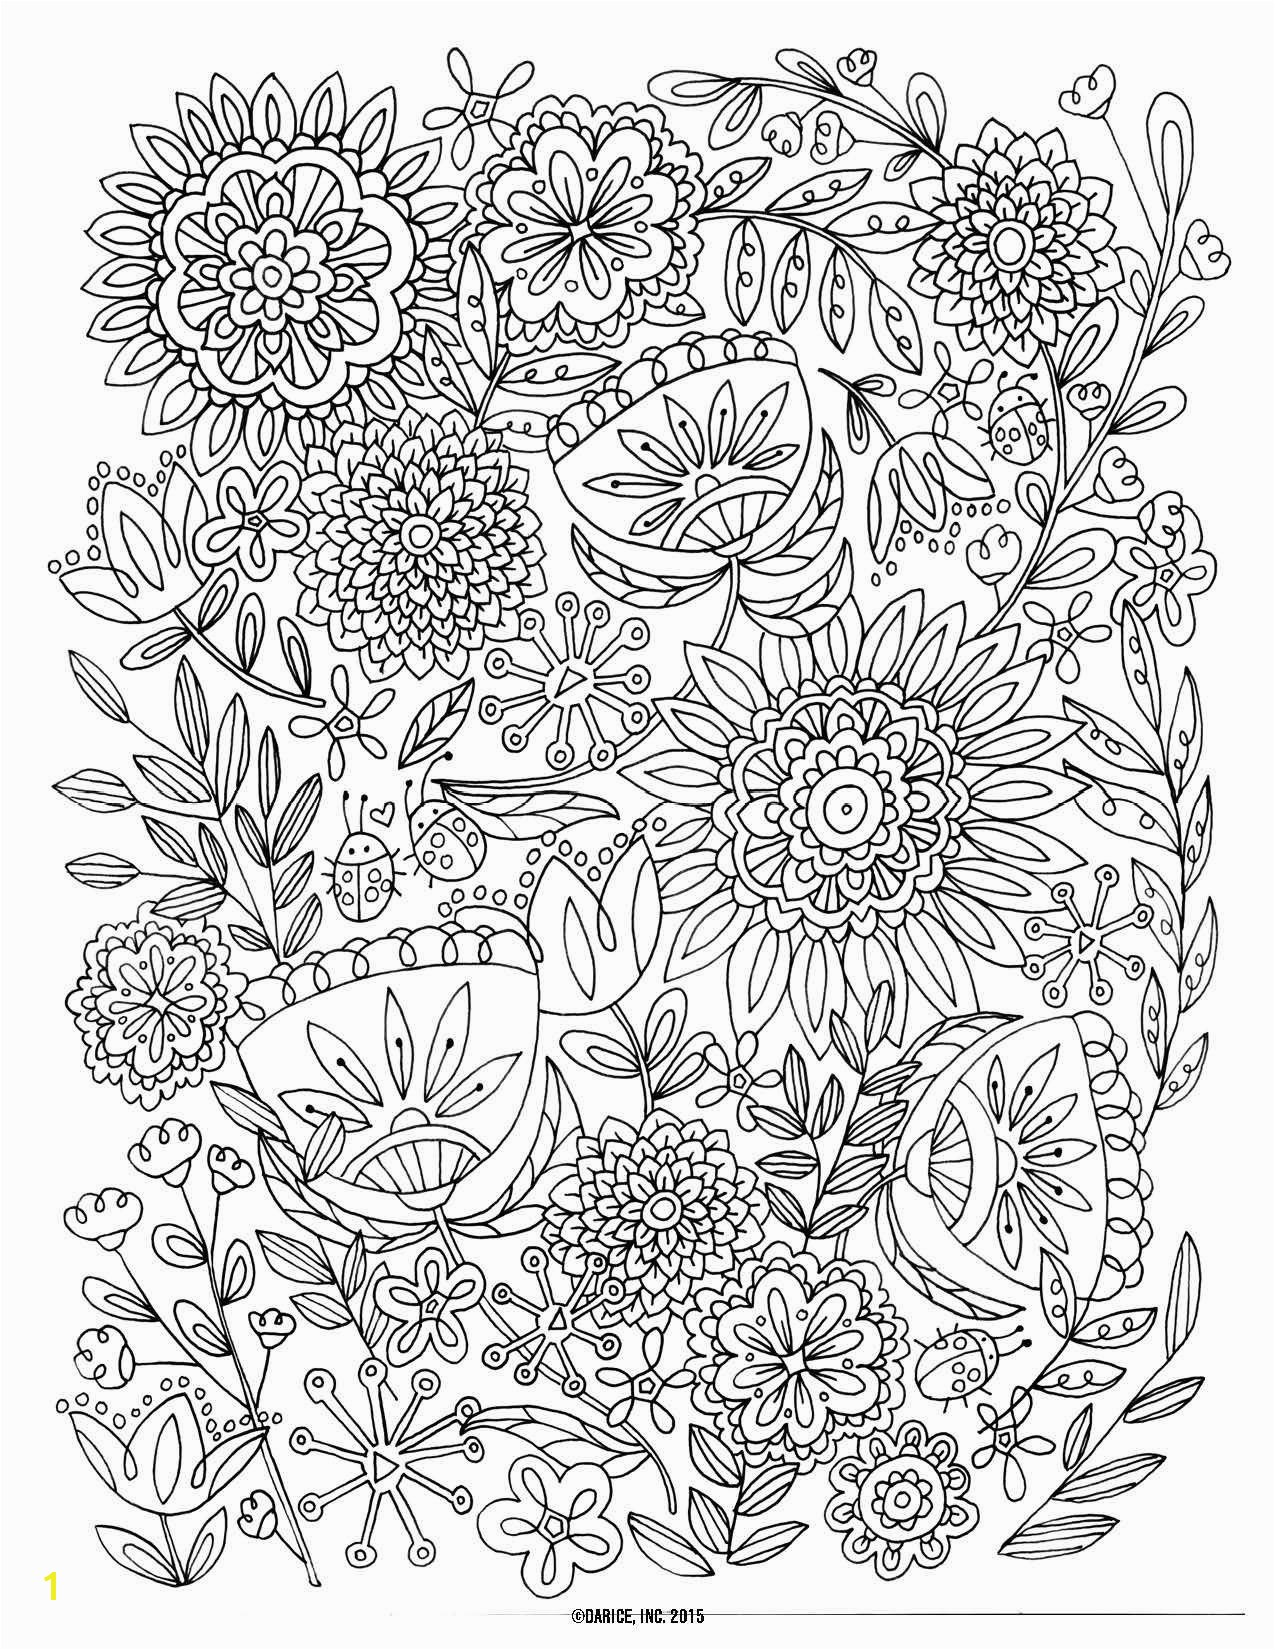 Love Coloring Pages for Adults Lovely Cool Coloring Page for Adult Od Kids Simple Floral Heart